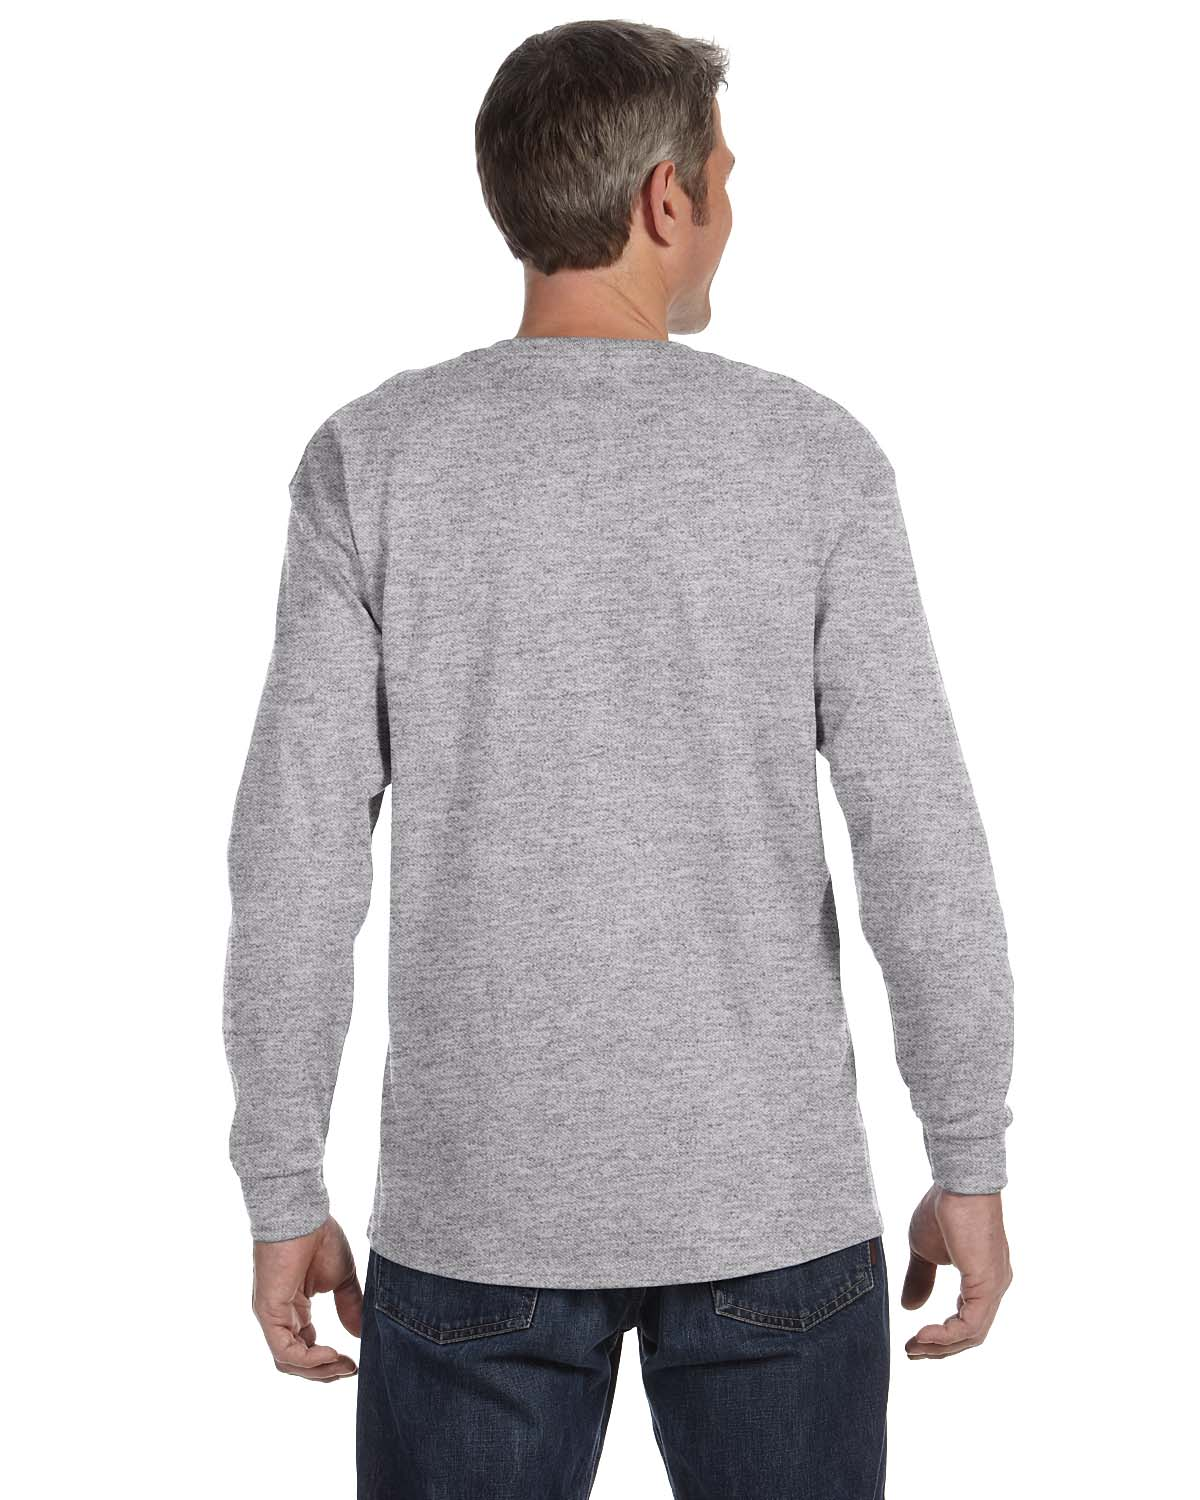 Gildan-Mens-T-Shirt-Long-Sleeve-Heavy-Cotton-5-3-oz-S-XL-R-G540-5400 thumbnail 53